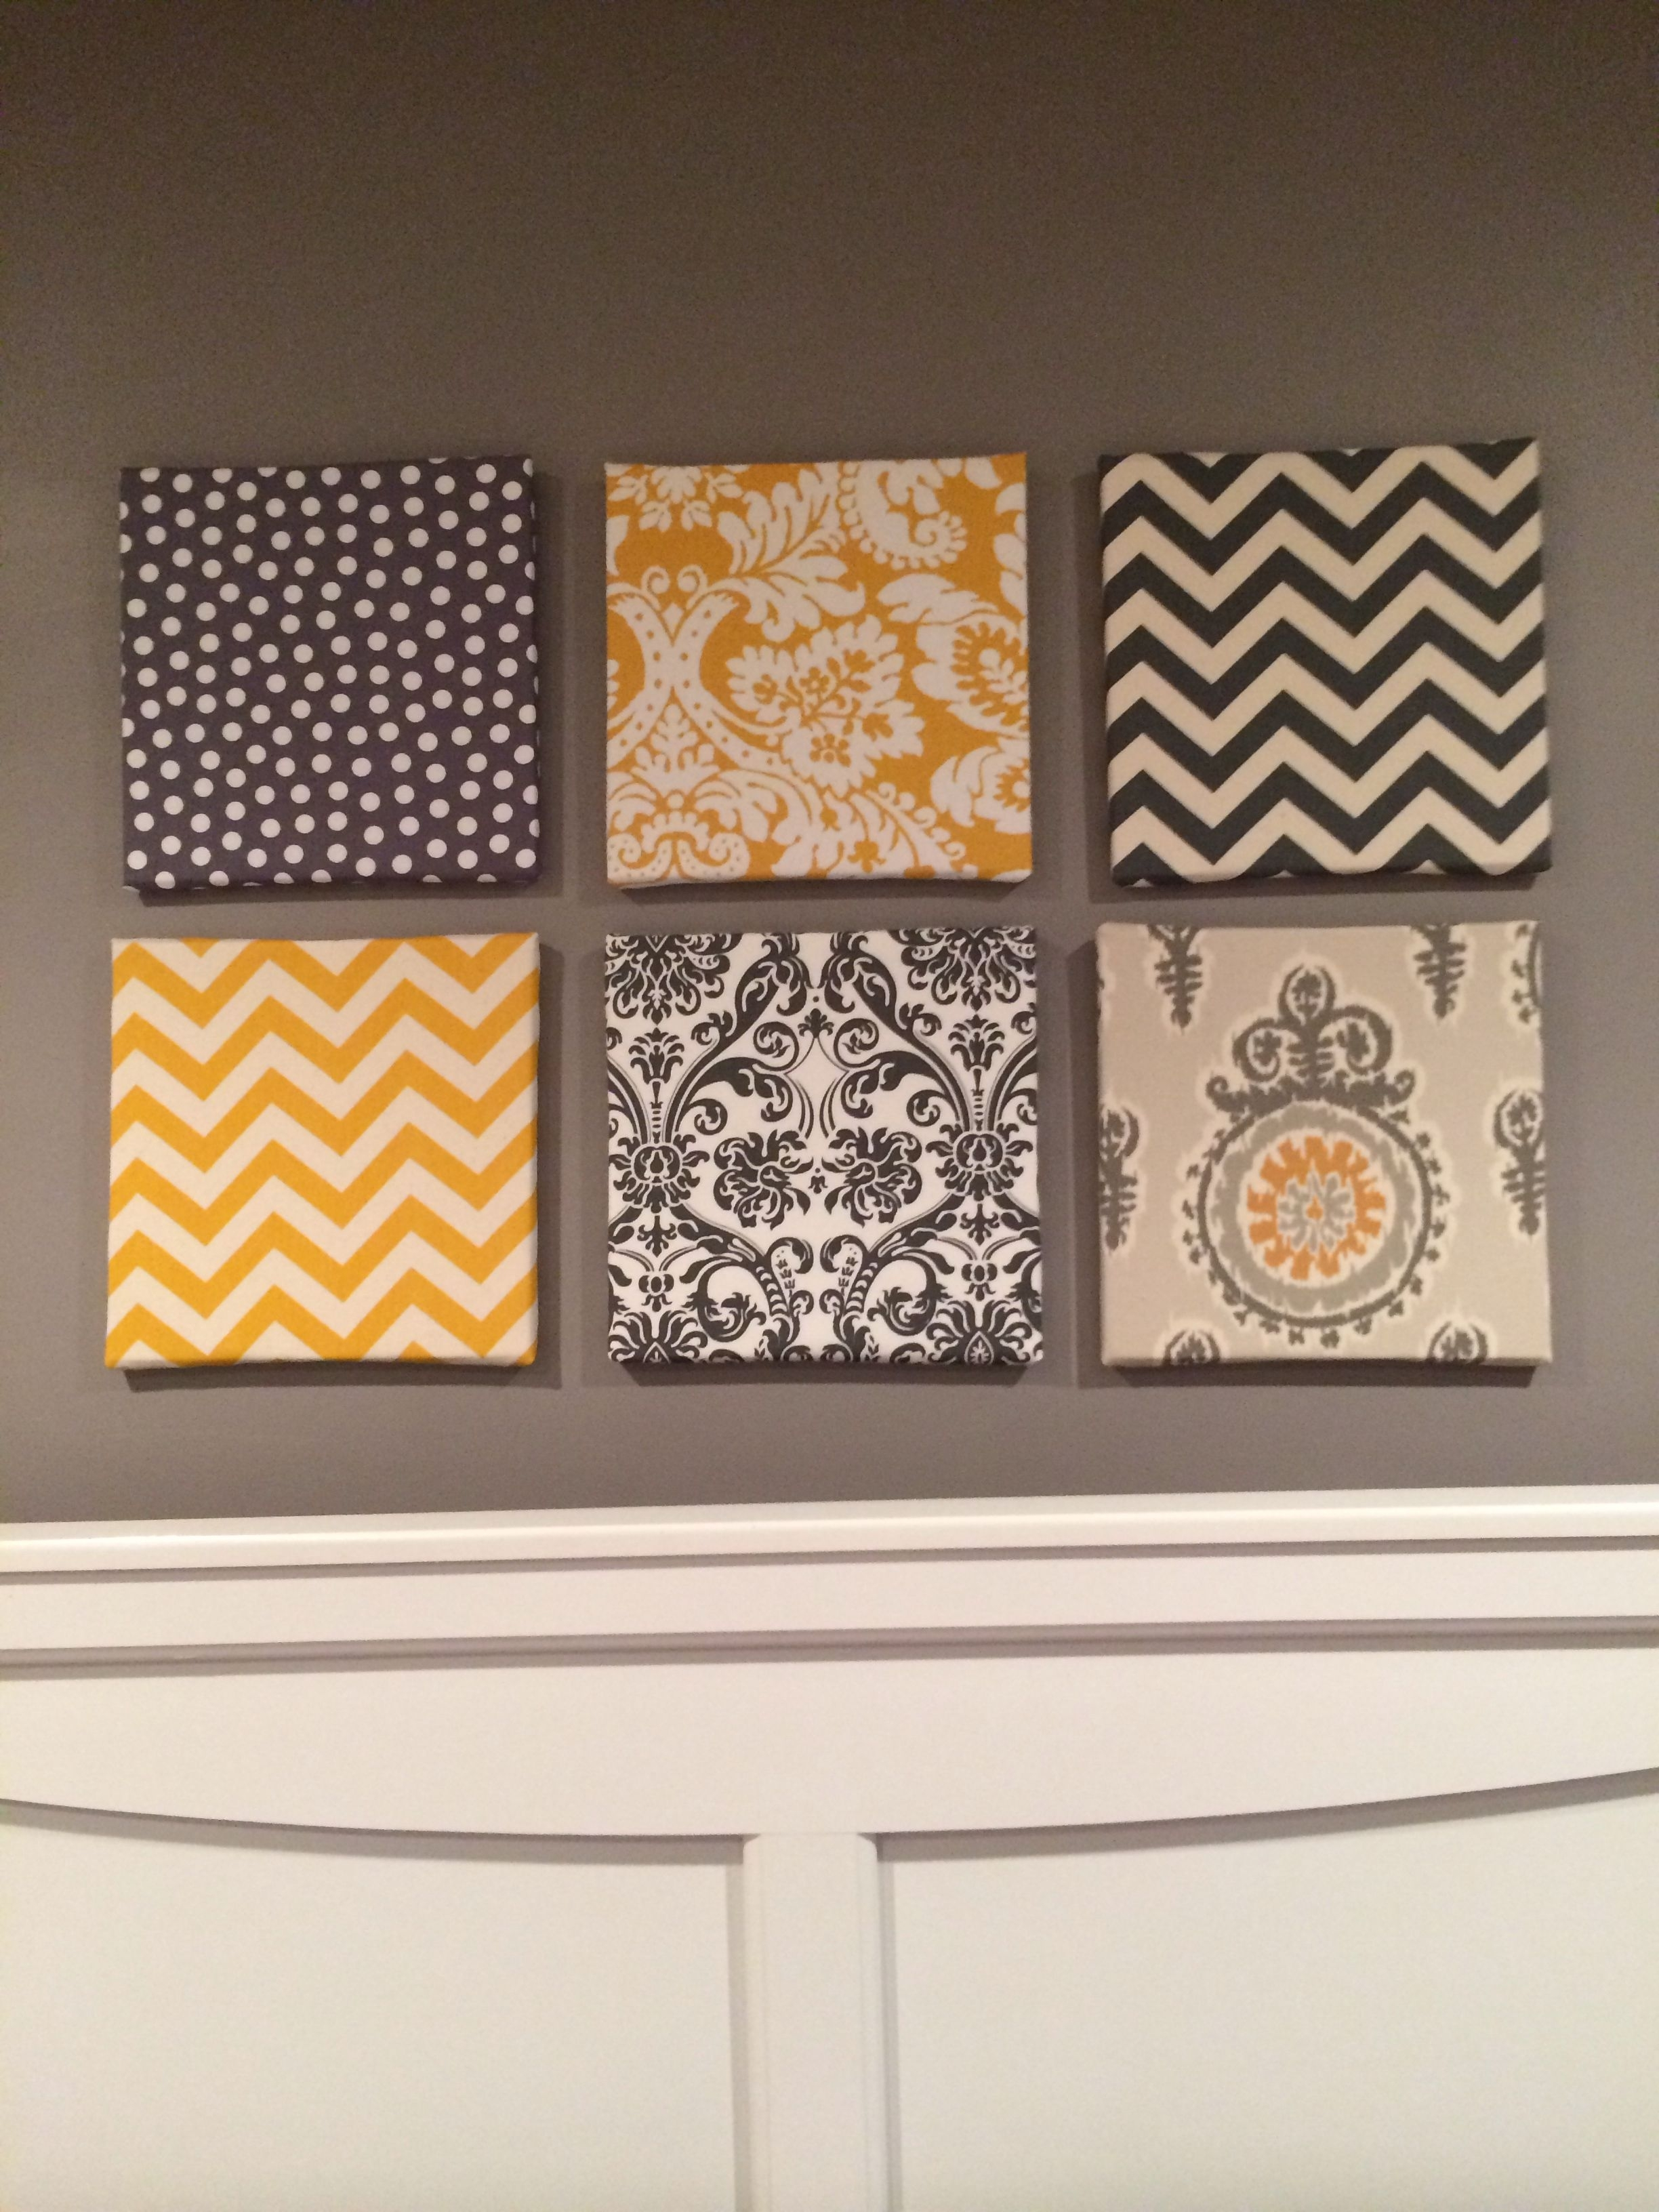 My Fabric Over Canvas Wall Art For My Gray And Yellow Themed Room Within Recent Cheap Fabric Wall Art (View 13 of 15)